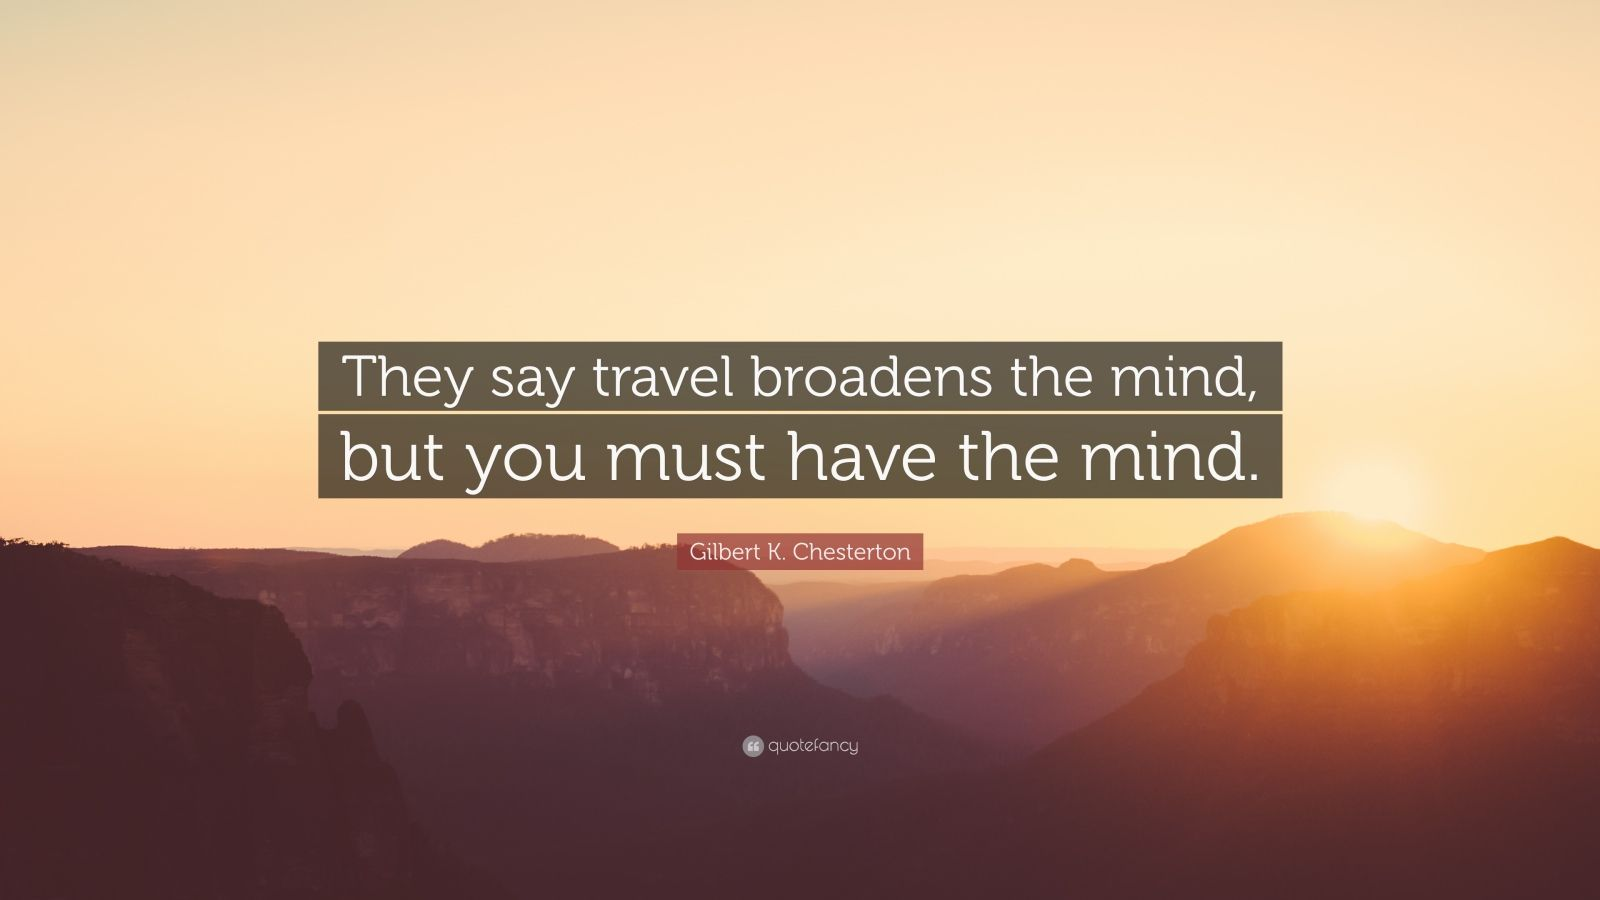 travel broadens the mind is